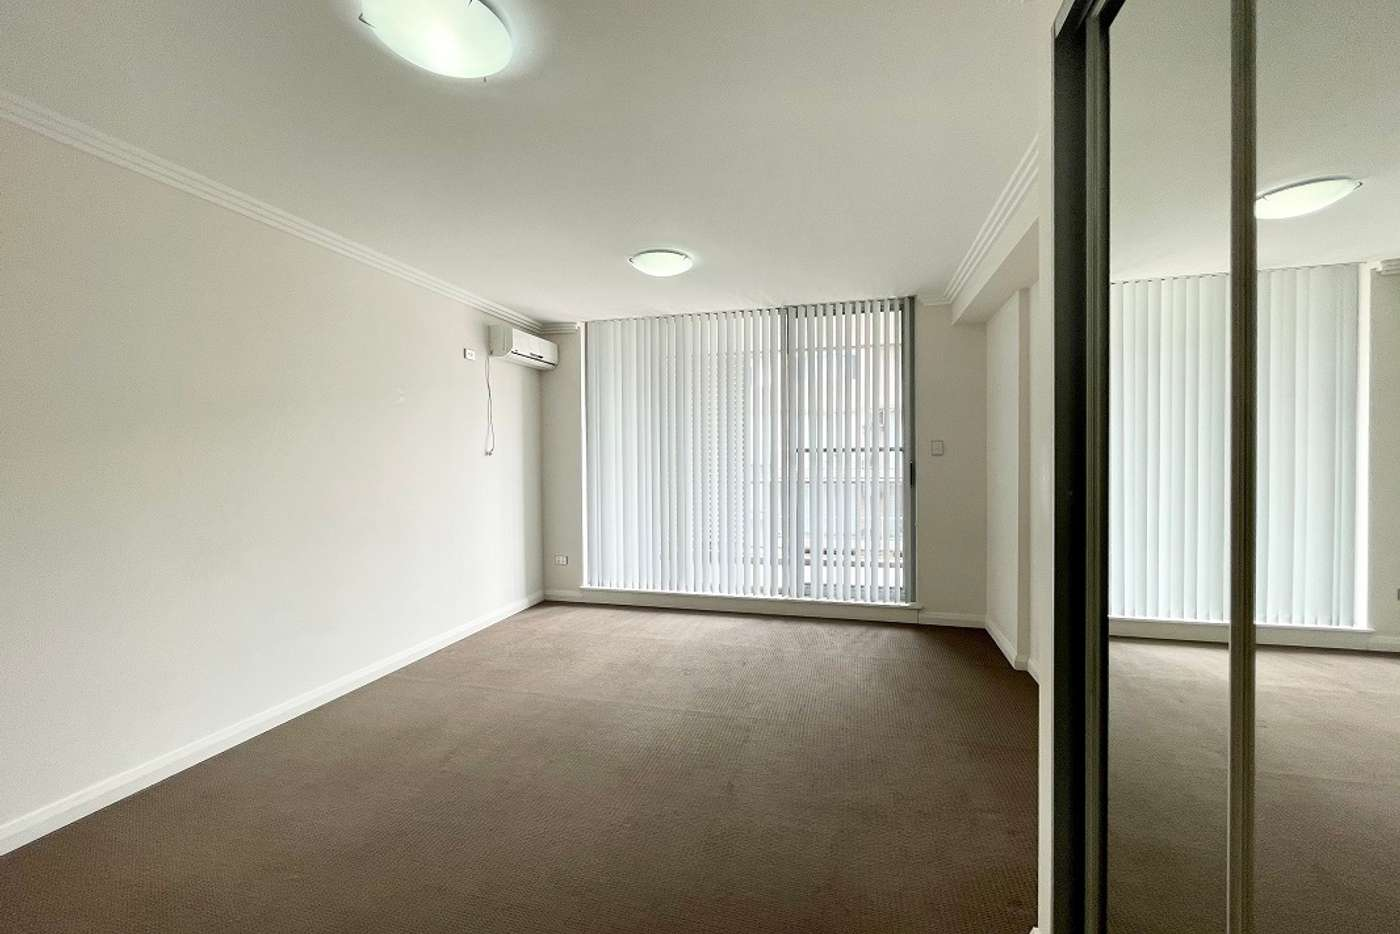 Main view of Homely studio listing, 15A/79-87 Beaconsfield Street, Silverwater NSW 2128